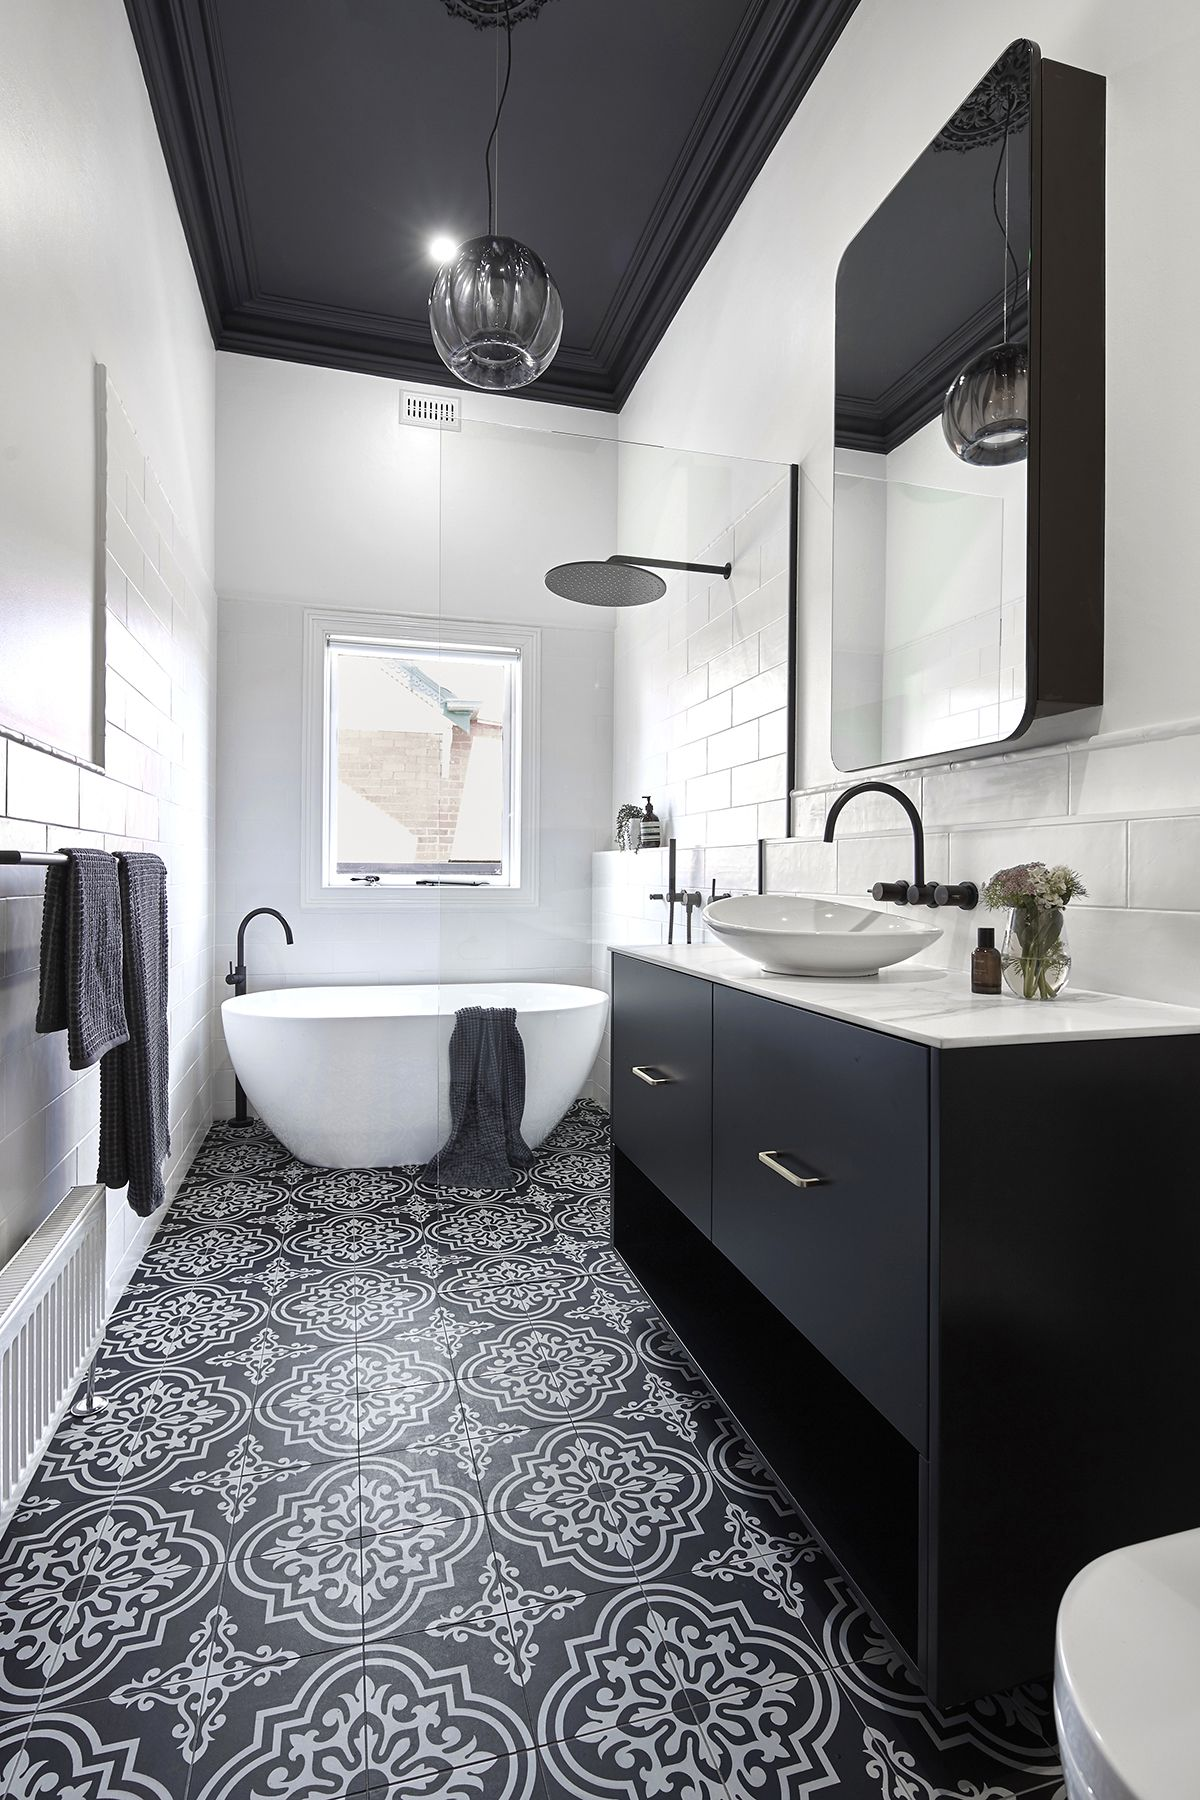 bathroom renovations melbourne in 2020 with images on bathroom renovation ideas melbourne id=78224